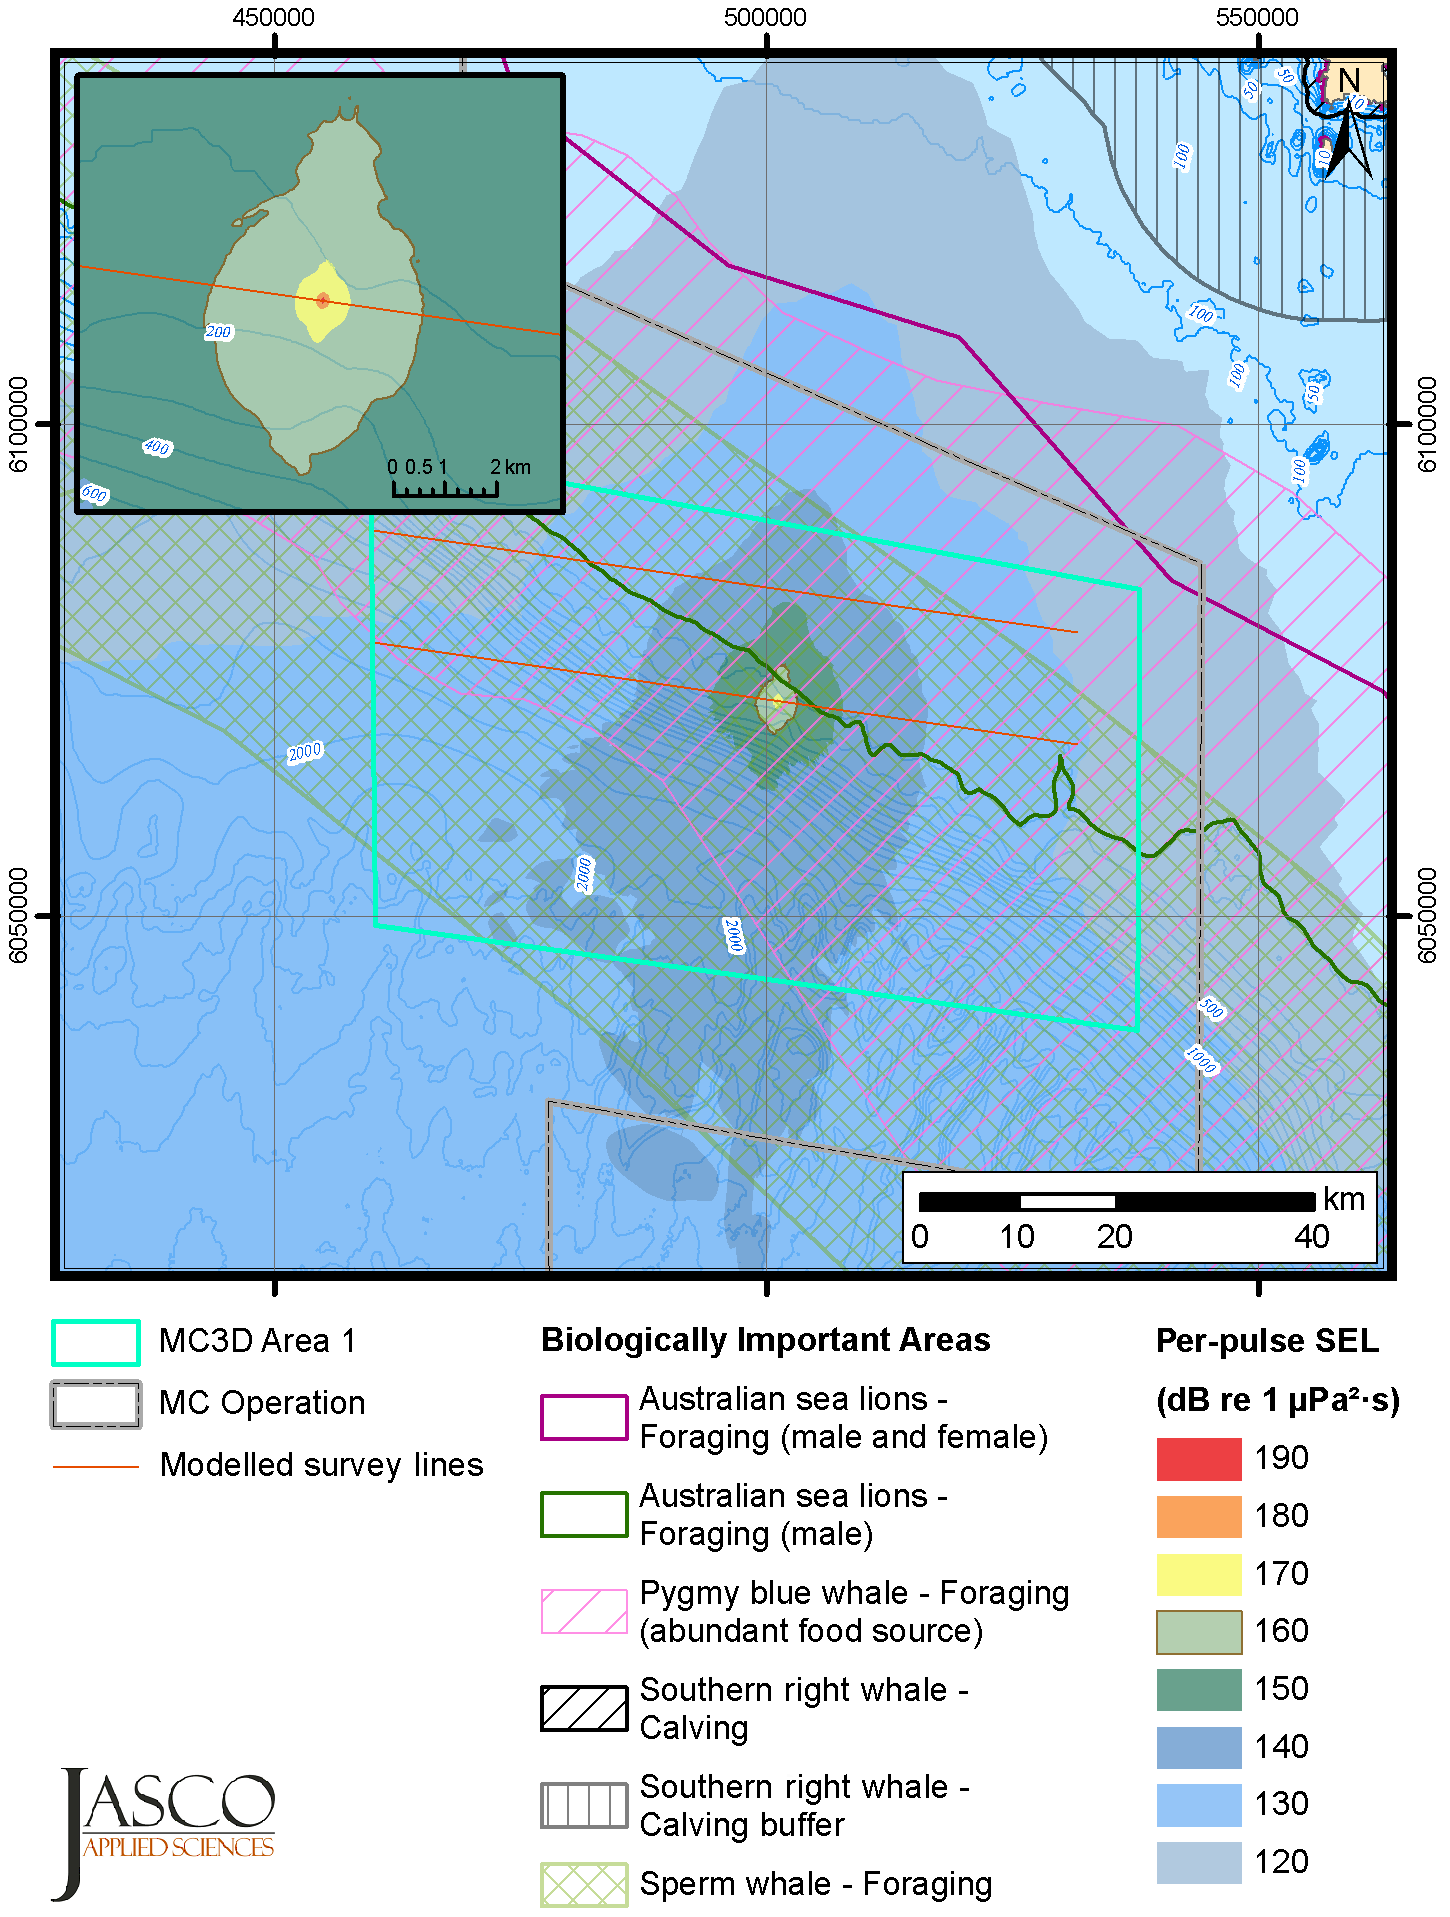 Example of modelled sound levels resulting from a seismic airgun array. The contours of the sound levels are overlayed on the foraging and calving areas of local marine mammal species. The sound levels shown are unweighted maximum-over-depth per-pulse sound exposure levels (SELs). The inset map shows a close-up of the SEL contours around the source.